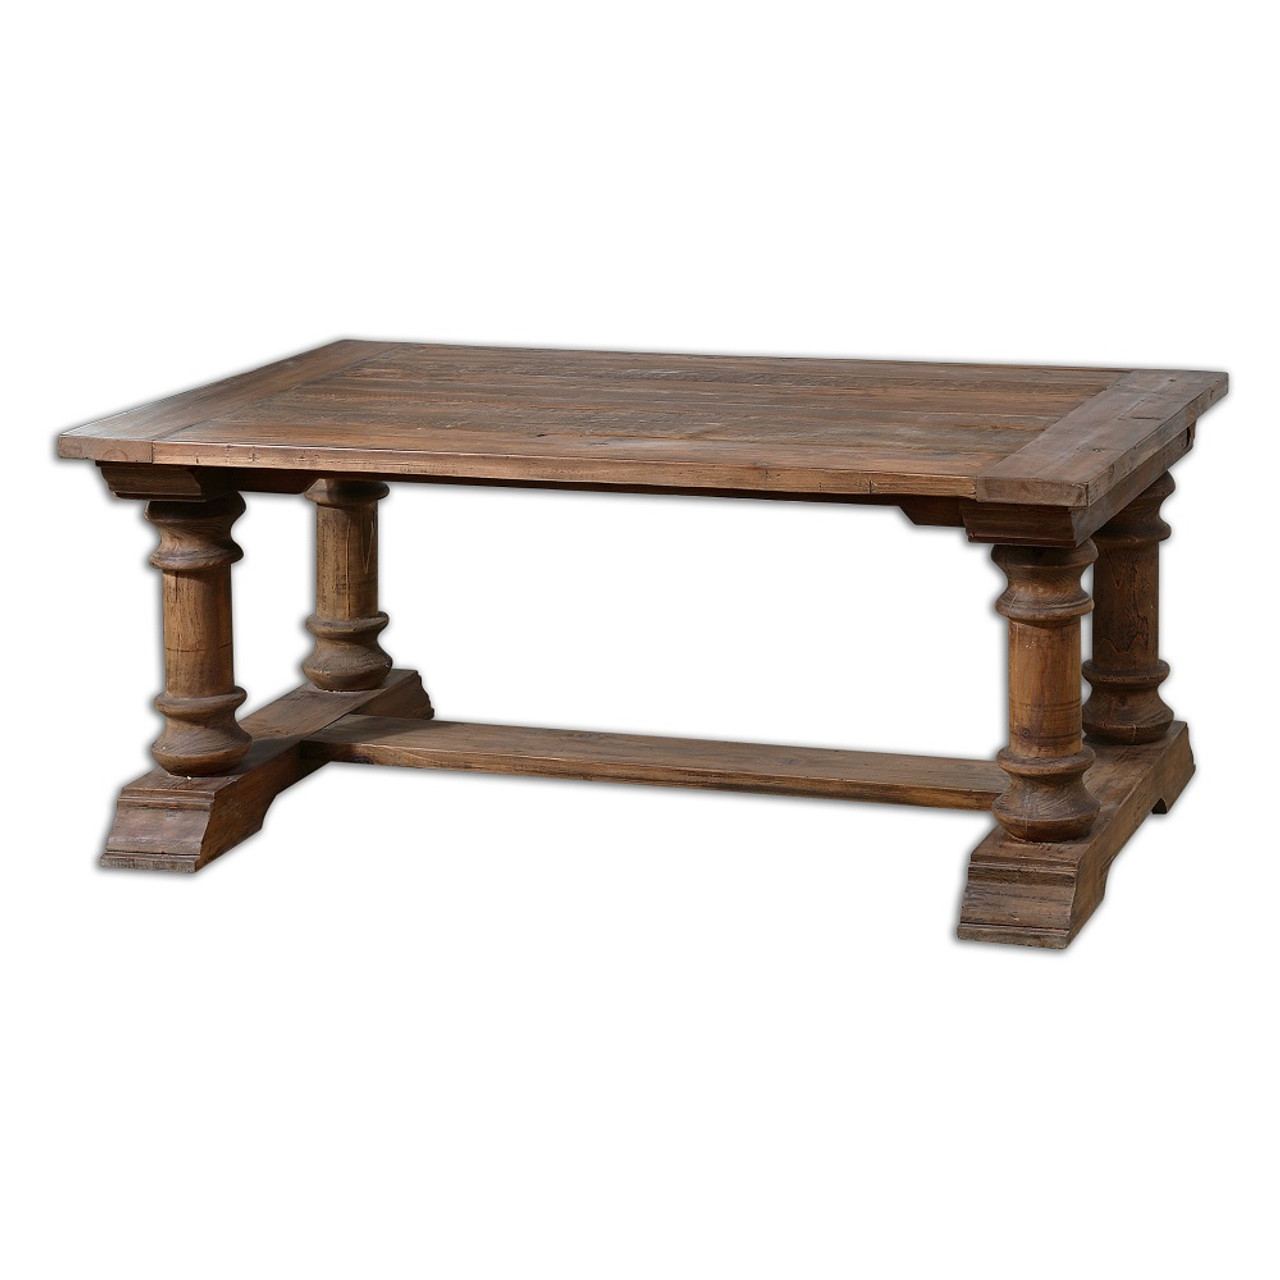 Saturia balustrade reclaimed wood coffee table zin home balustrade salvaged wood coffee table geotapseo Gallery